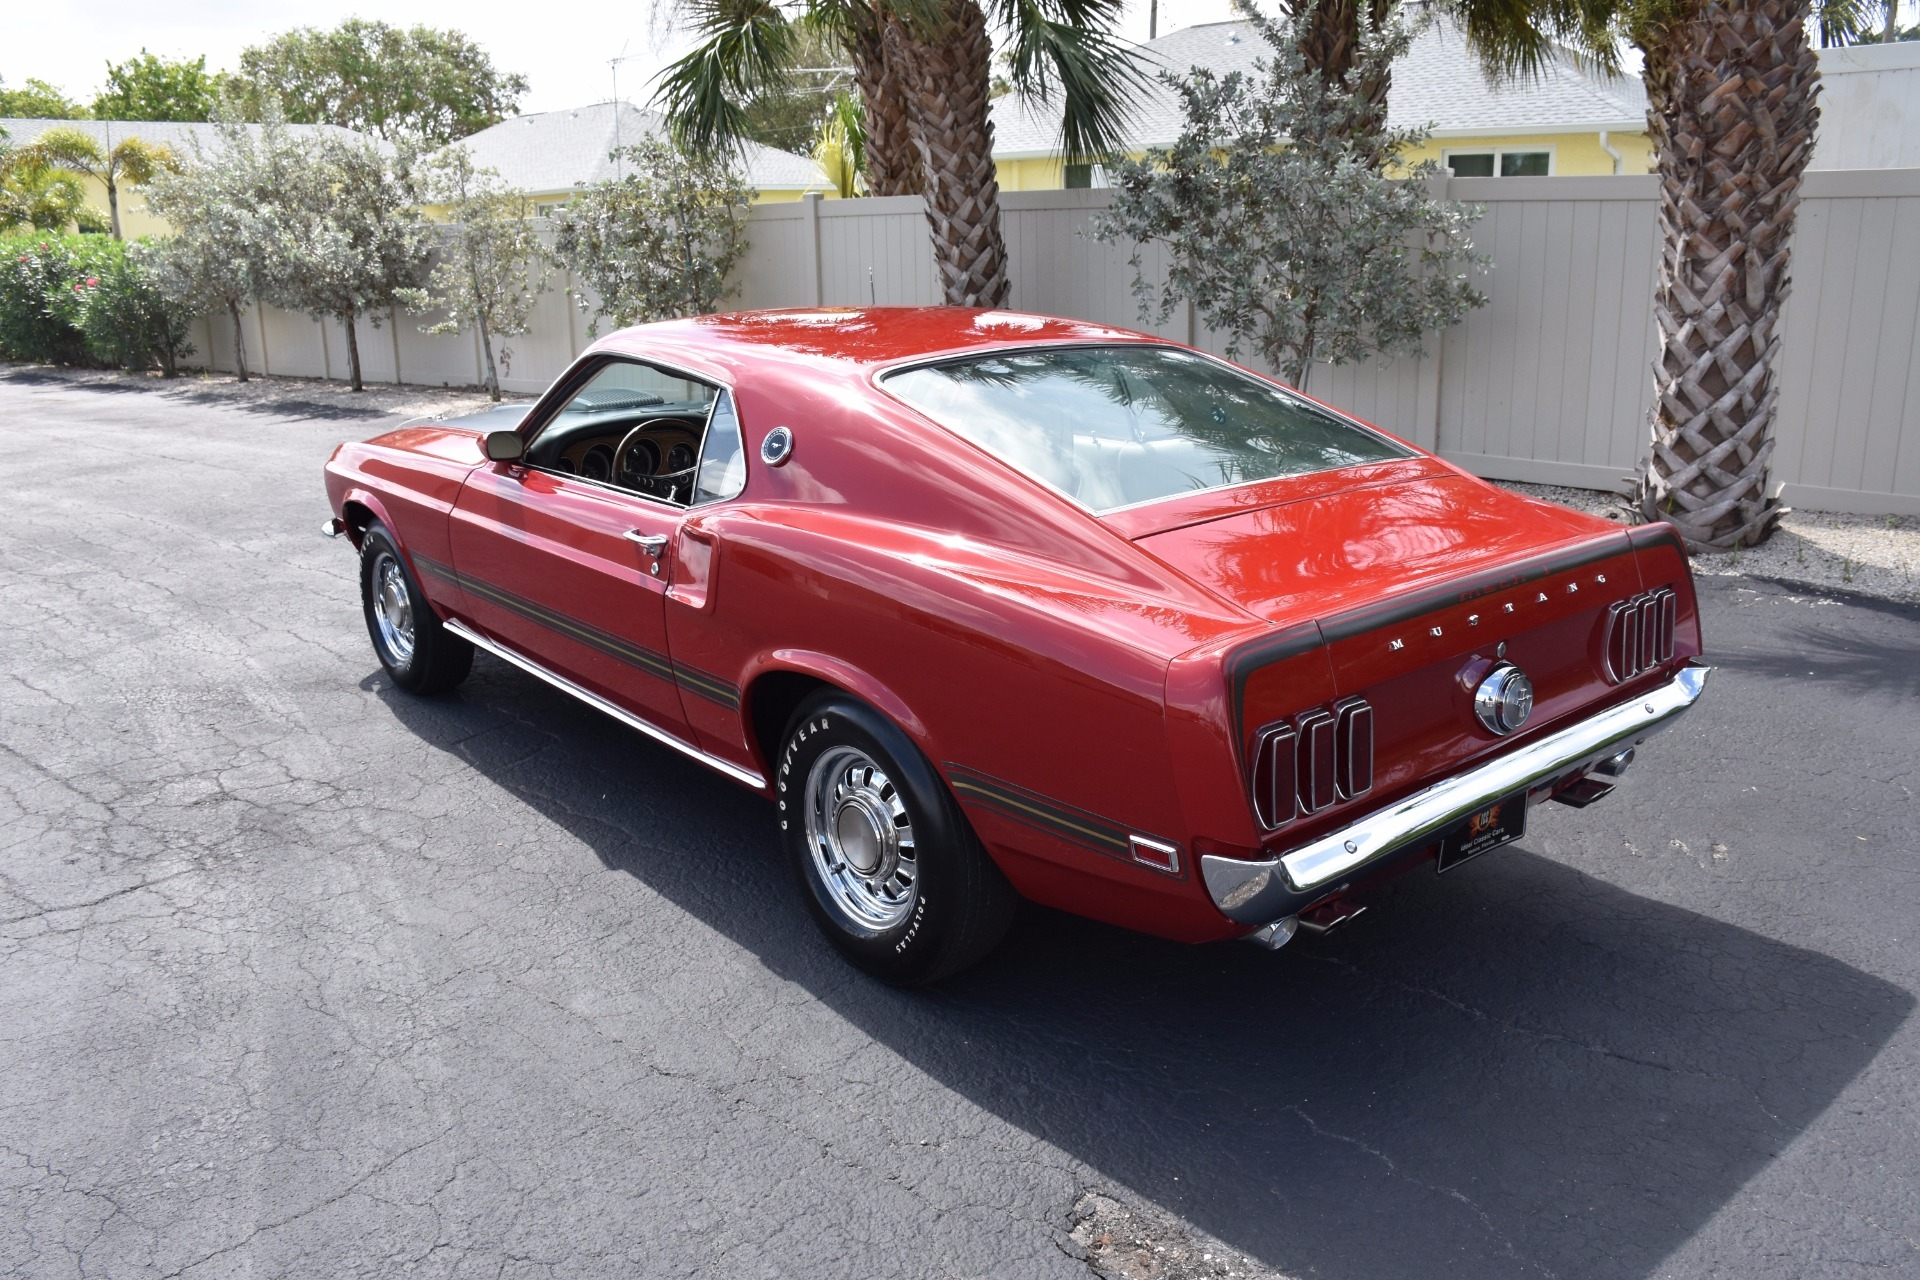 1969 Ford Mustang Mach 1 428 Cobra Jet 0 Candy Apple Red Coupe Shaker Scoop 428ci J